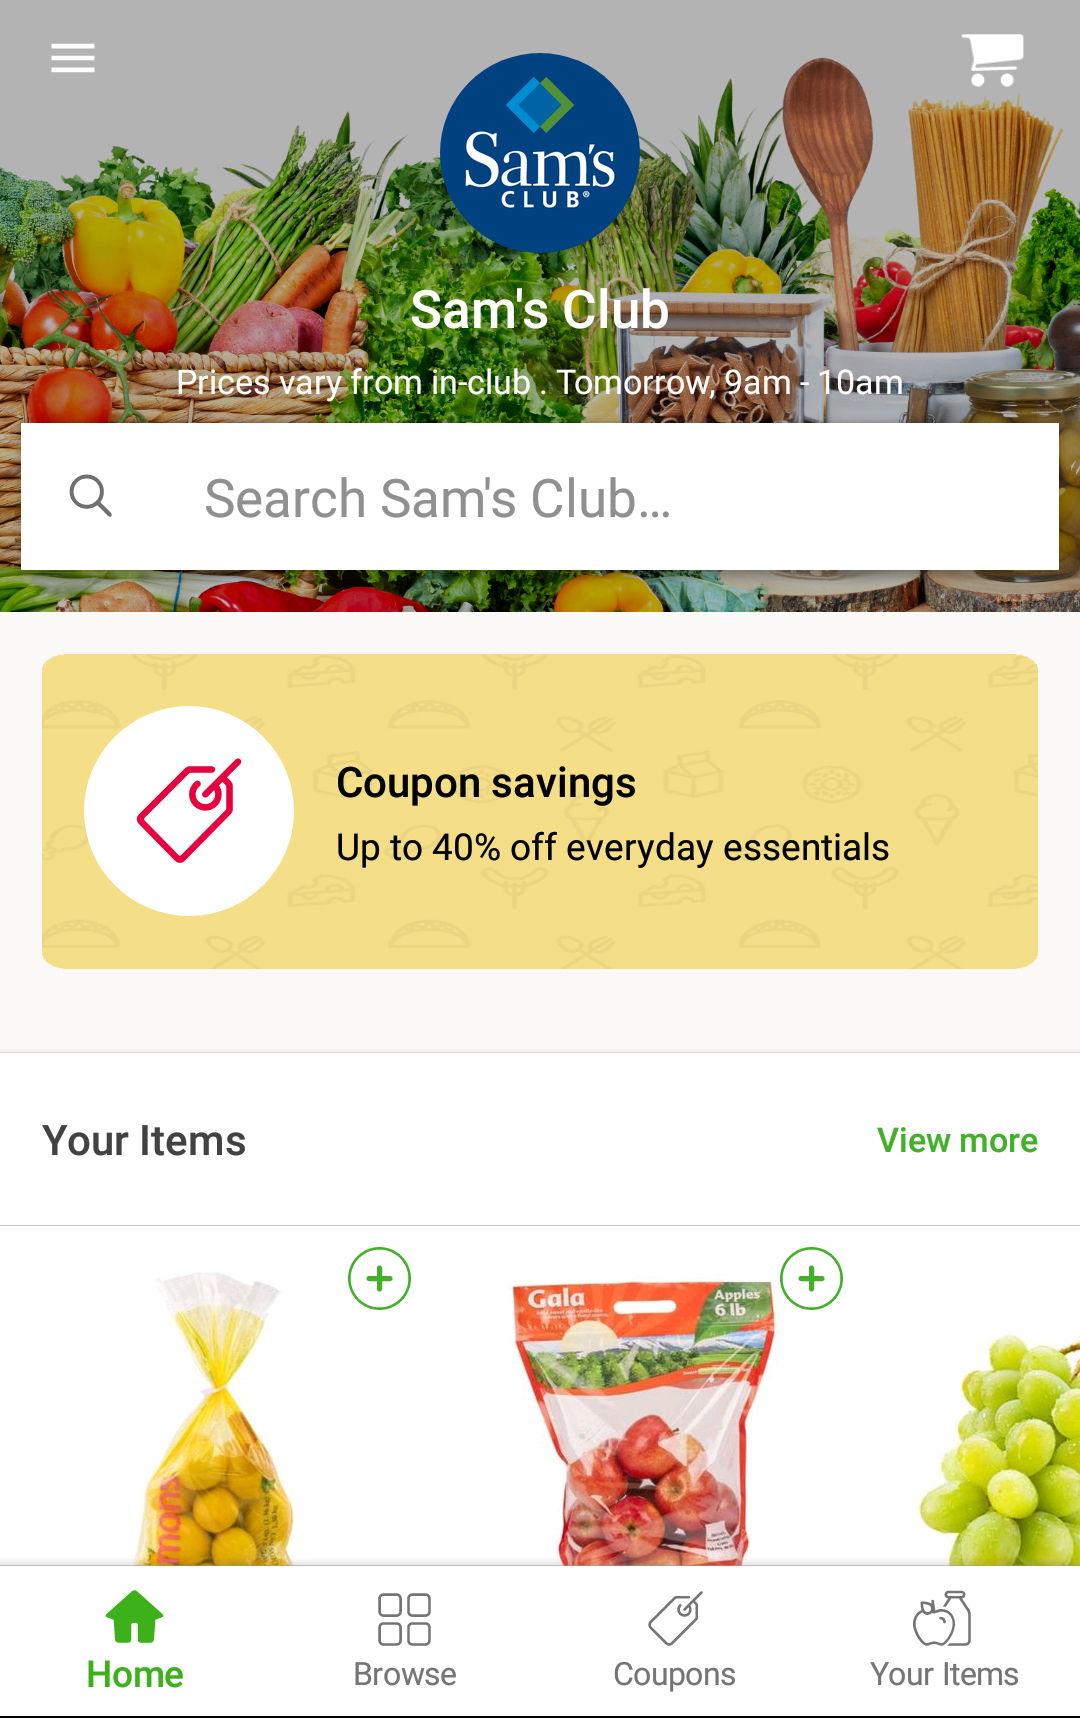 Sam's Club Joins Forces with Instacart to Offer Same-Day